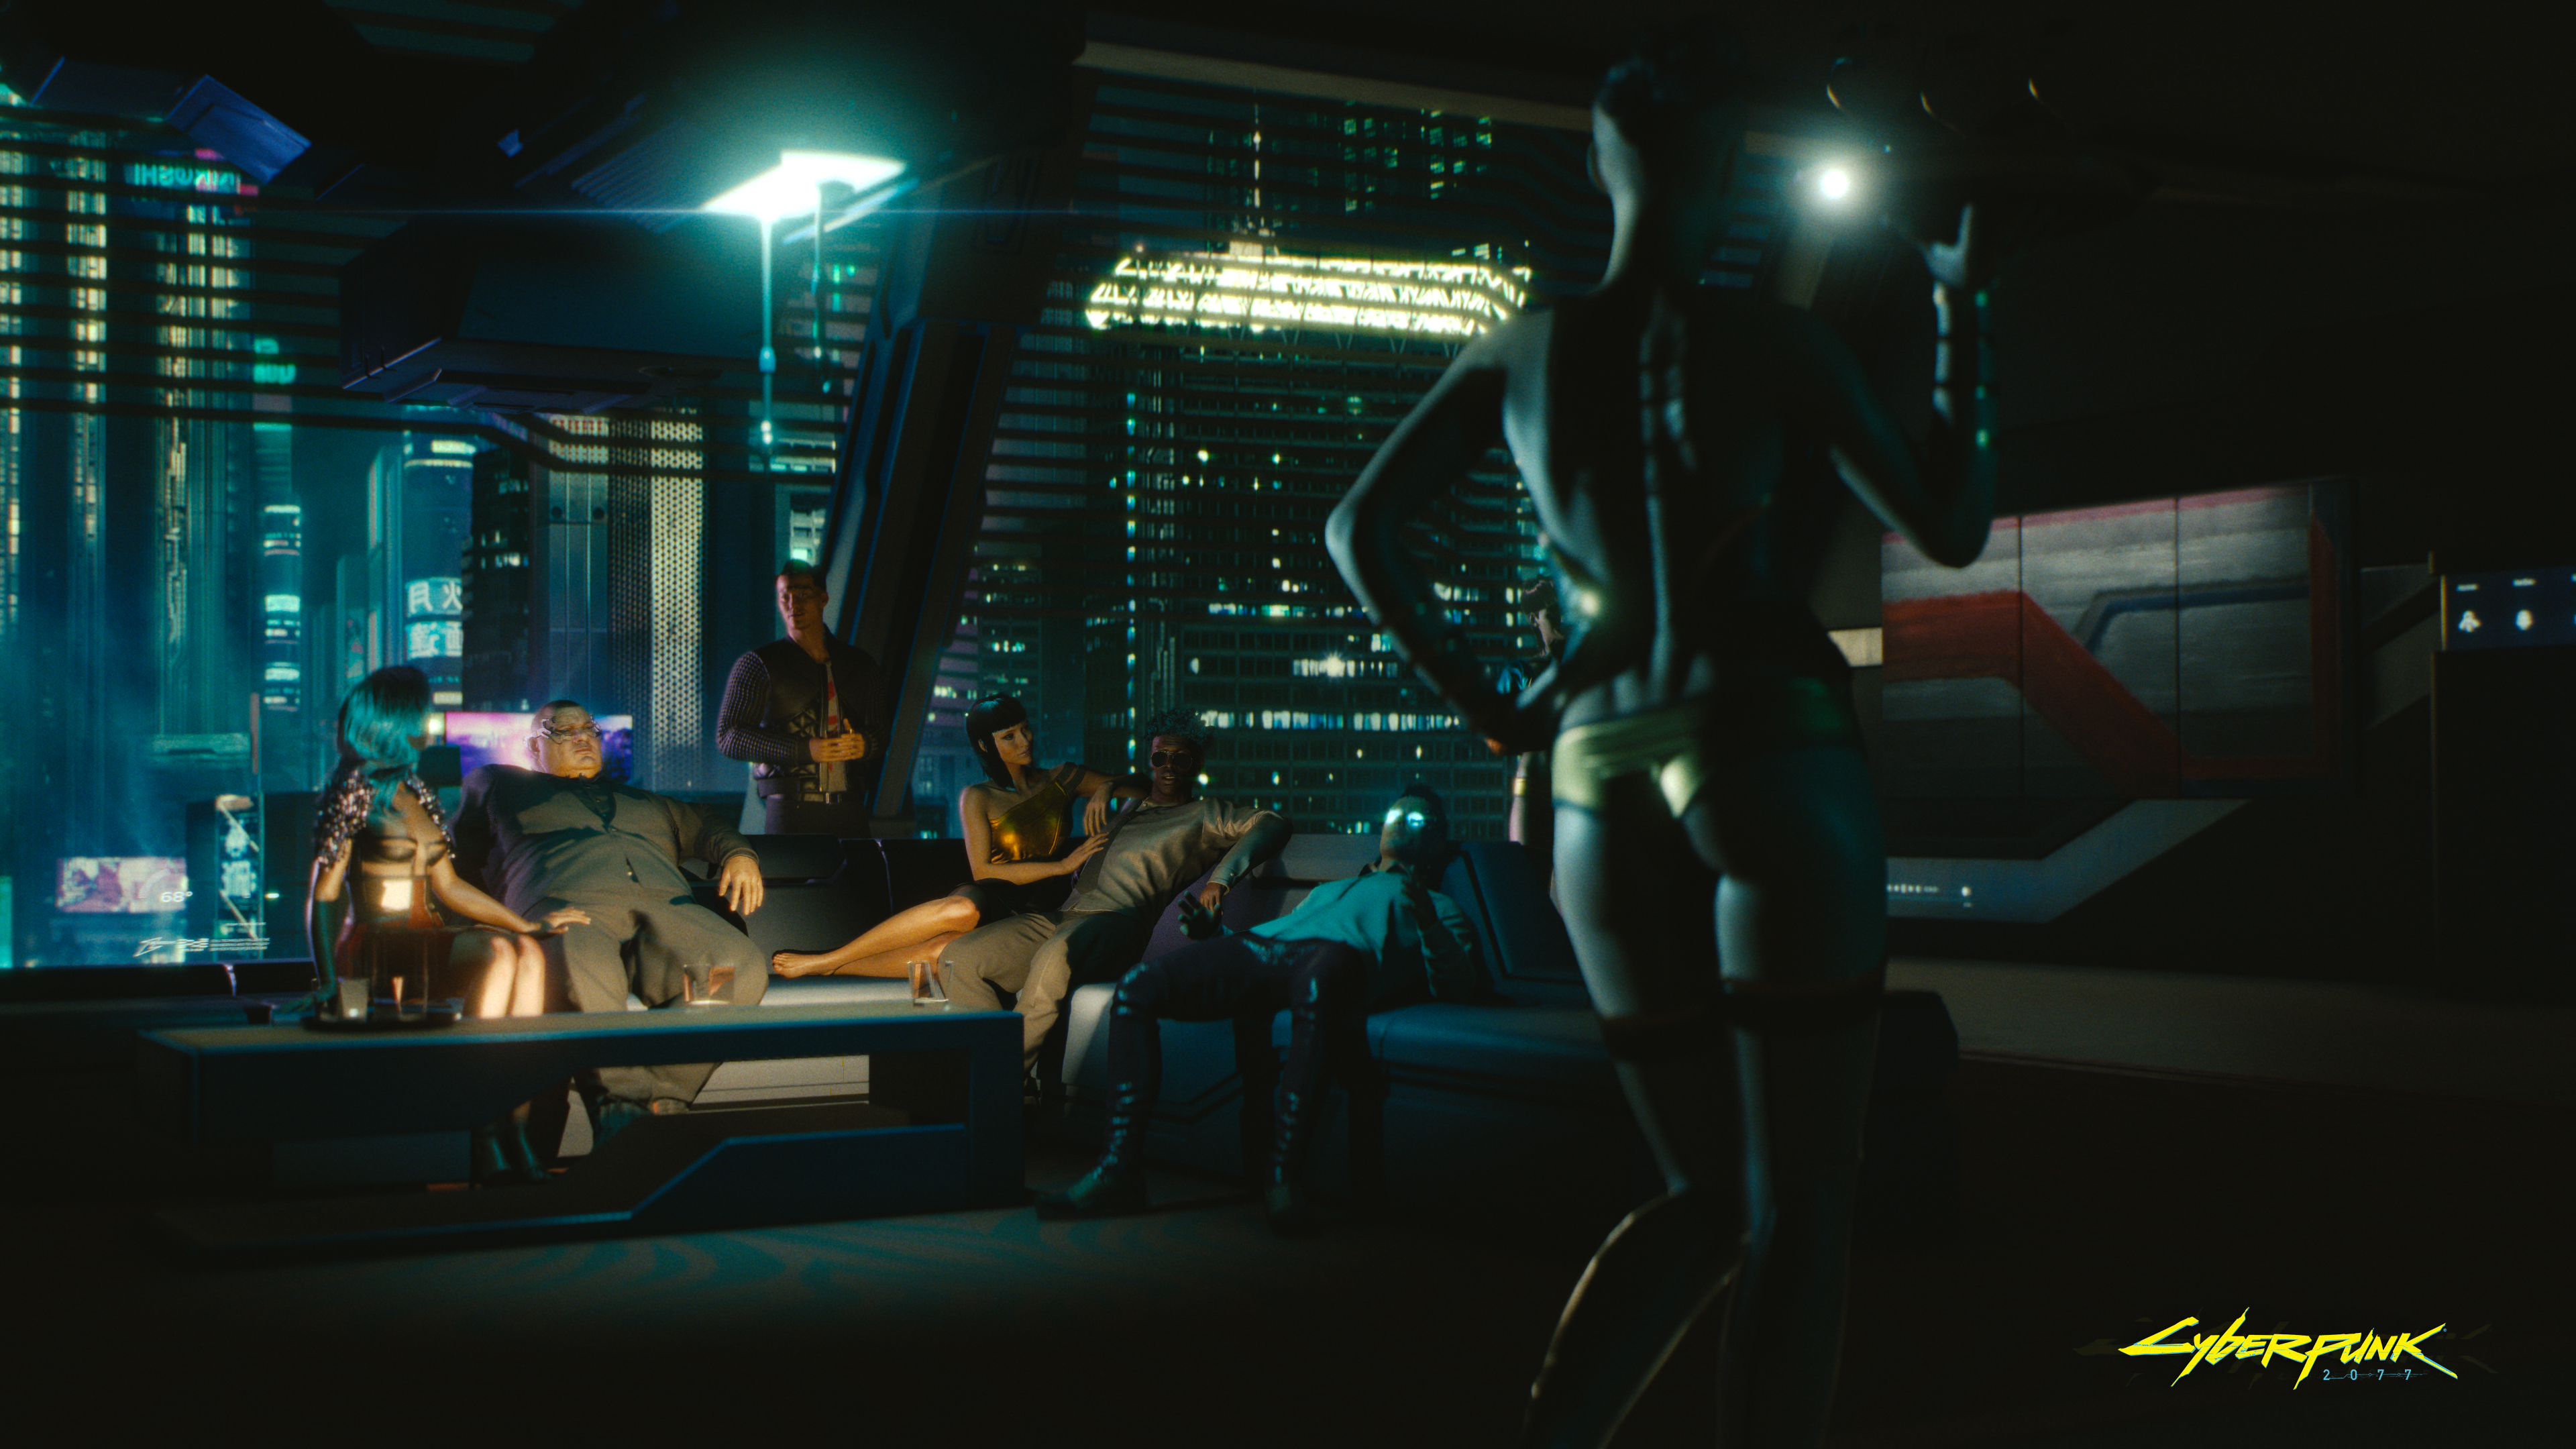 Cyberpunk2077_The_life_of_luxury_RGB_EN.